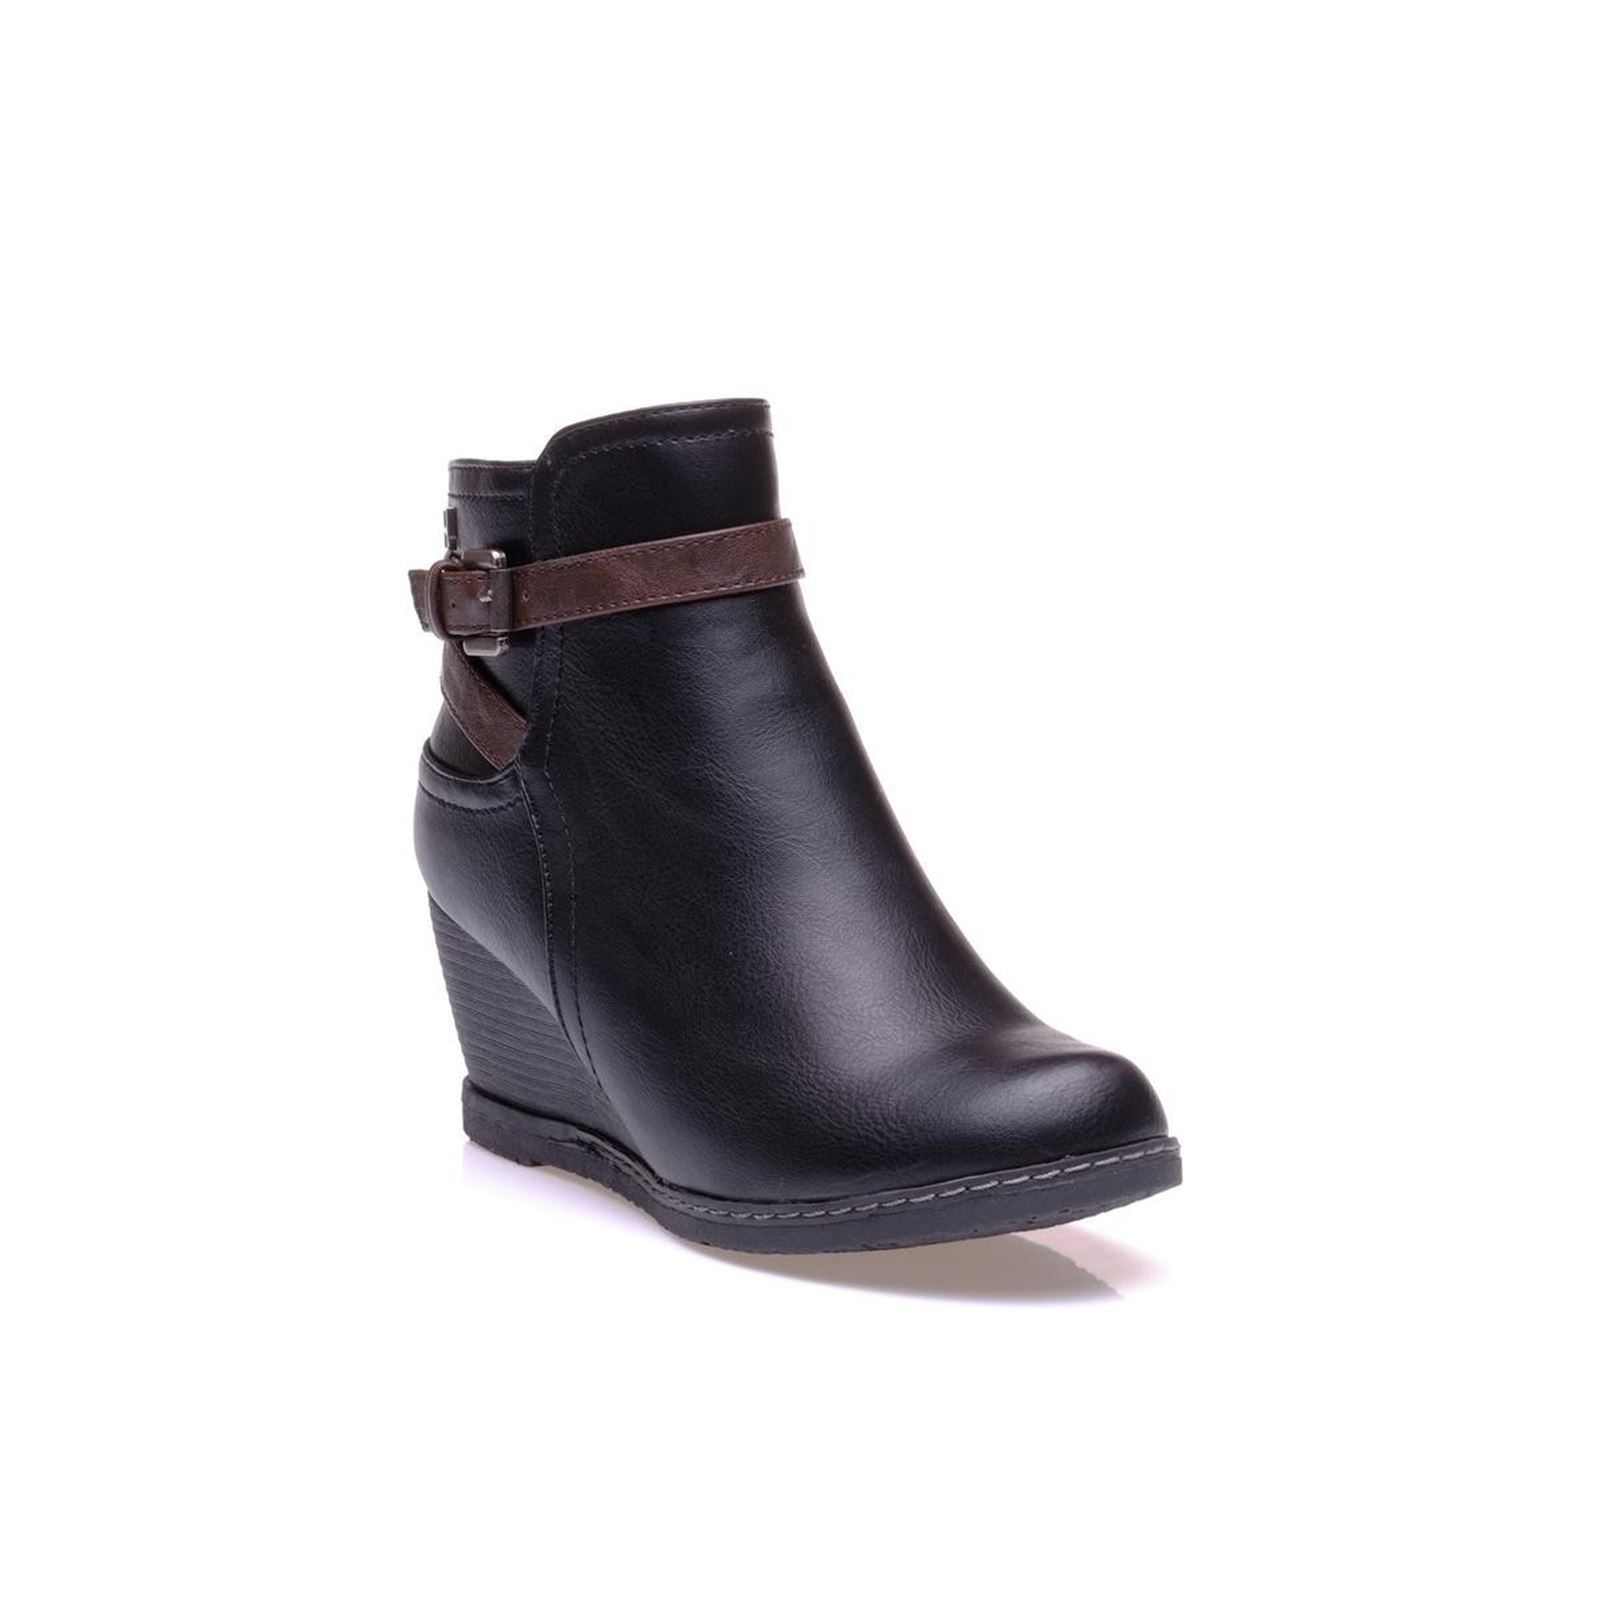 Xti Boots Bottines - noir